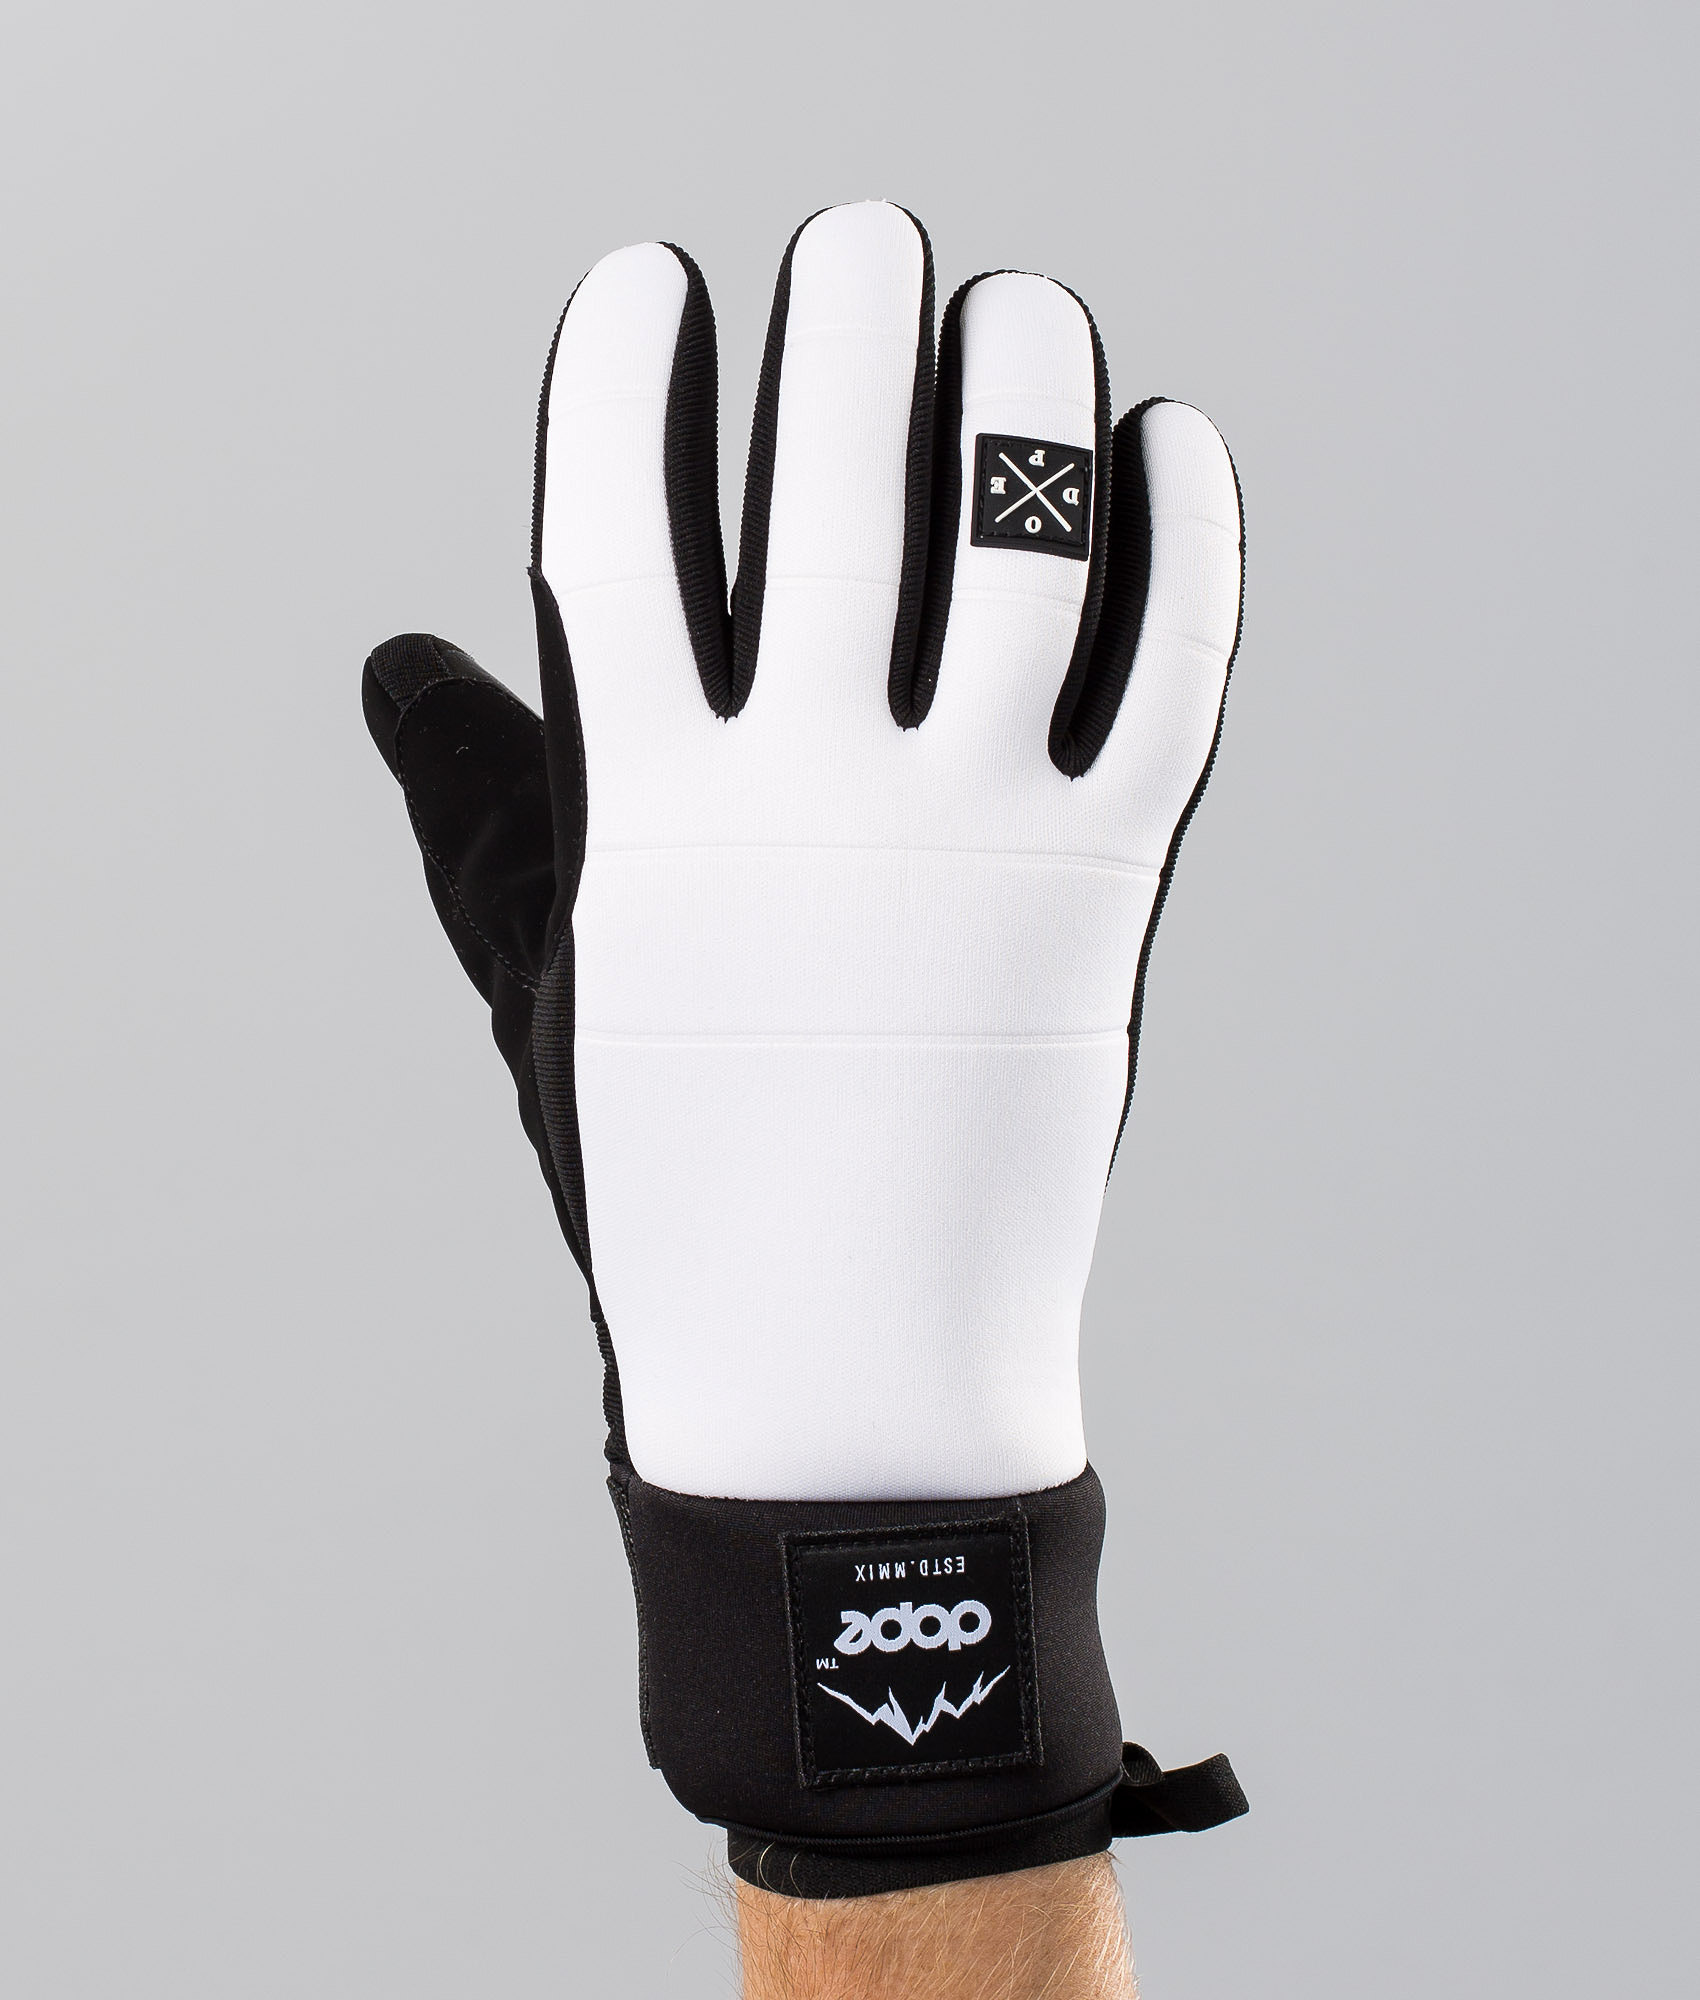 bfcf74b6 Men's Snowboard Gloves | Fast & Free Delivery | RIDESTORE